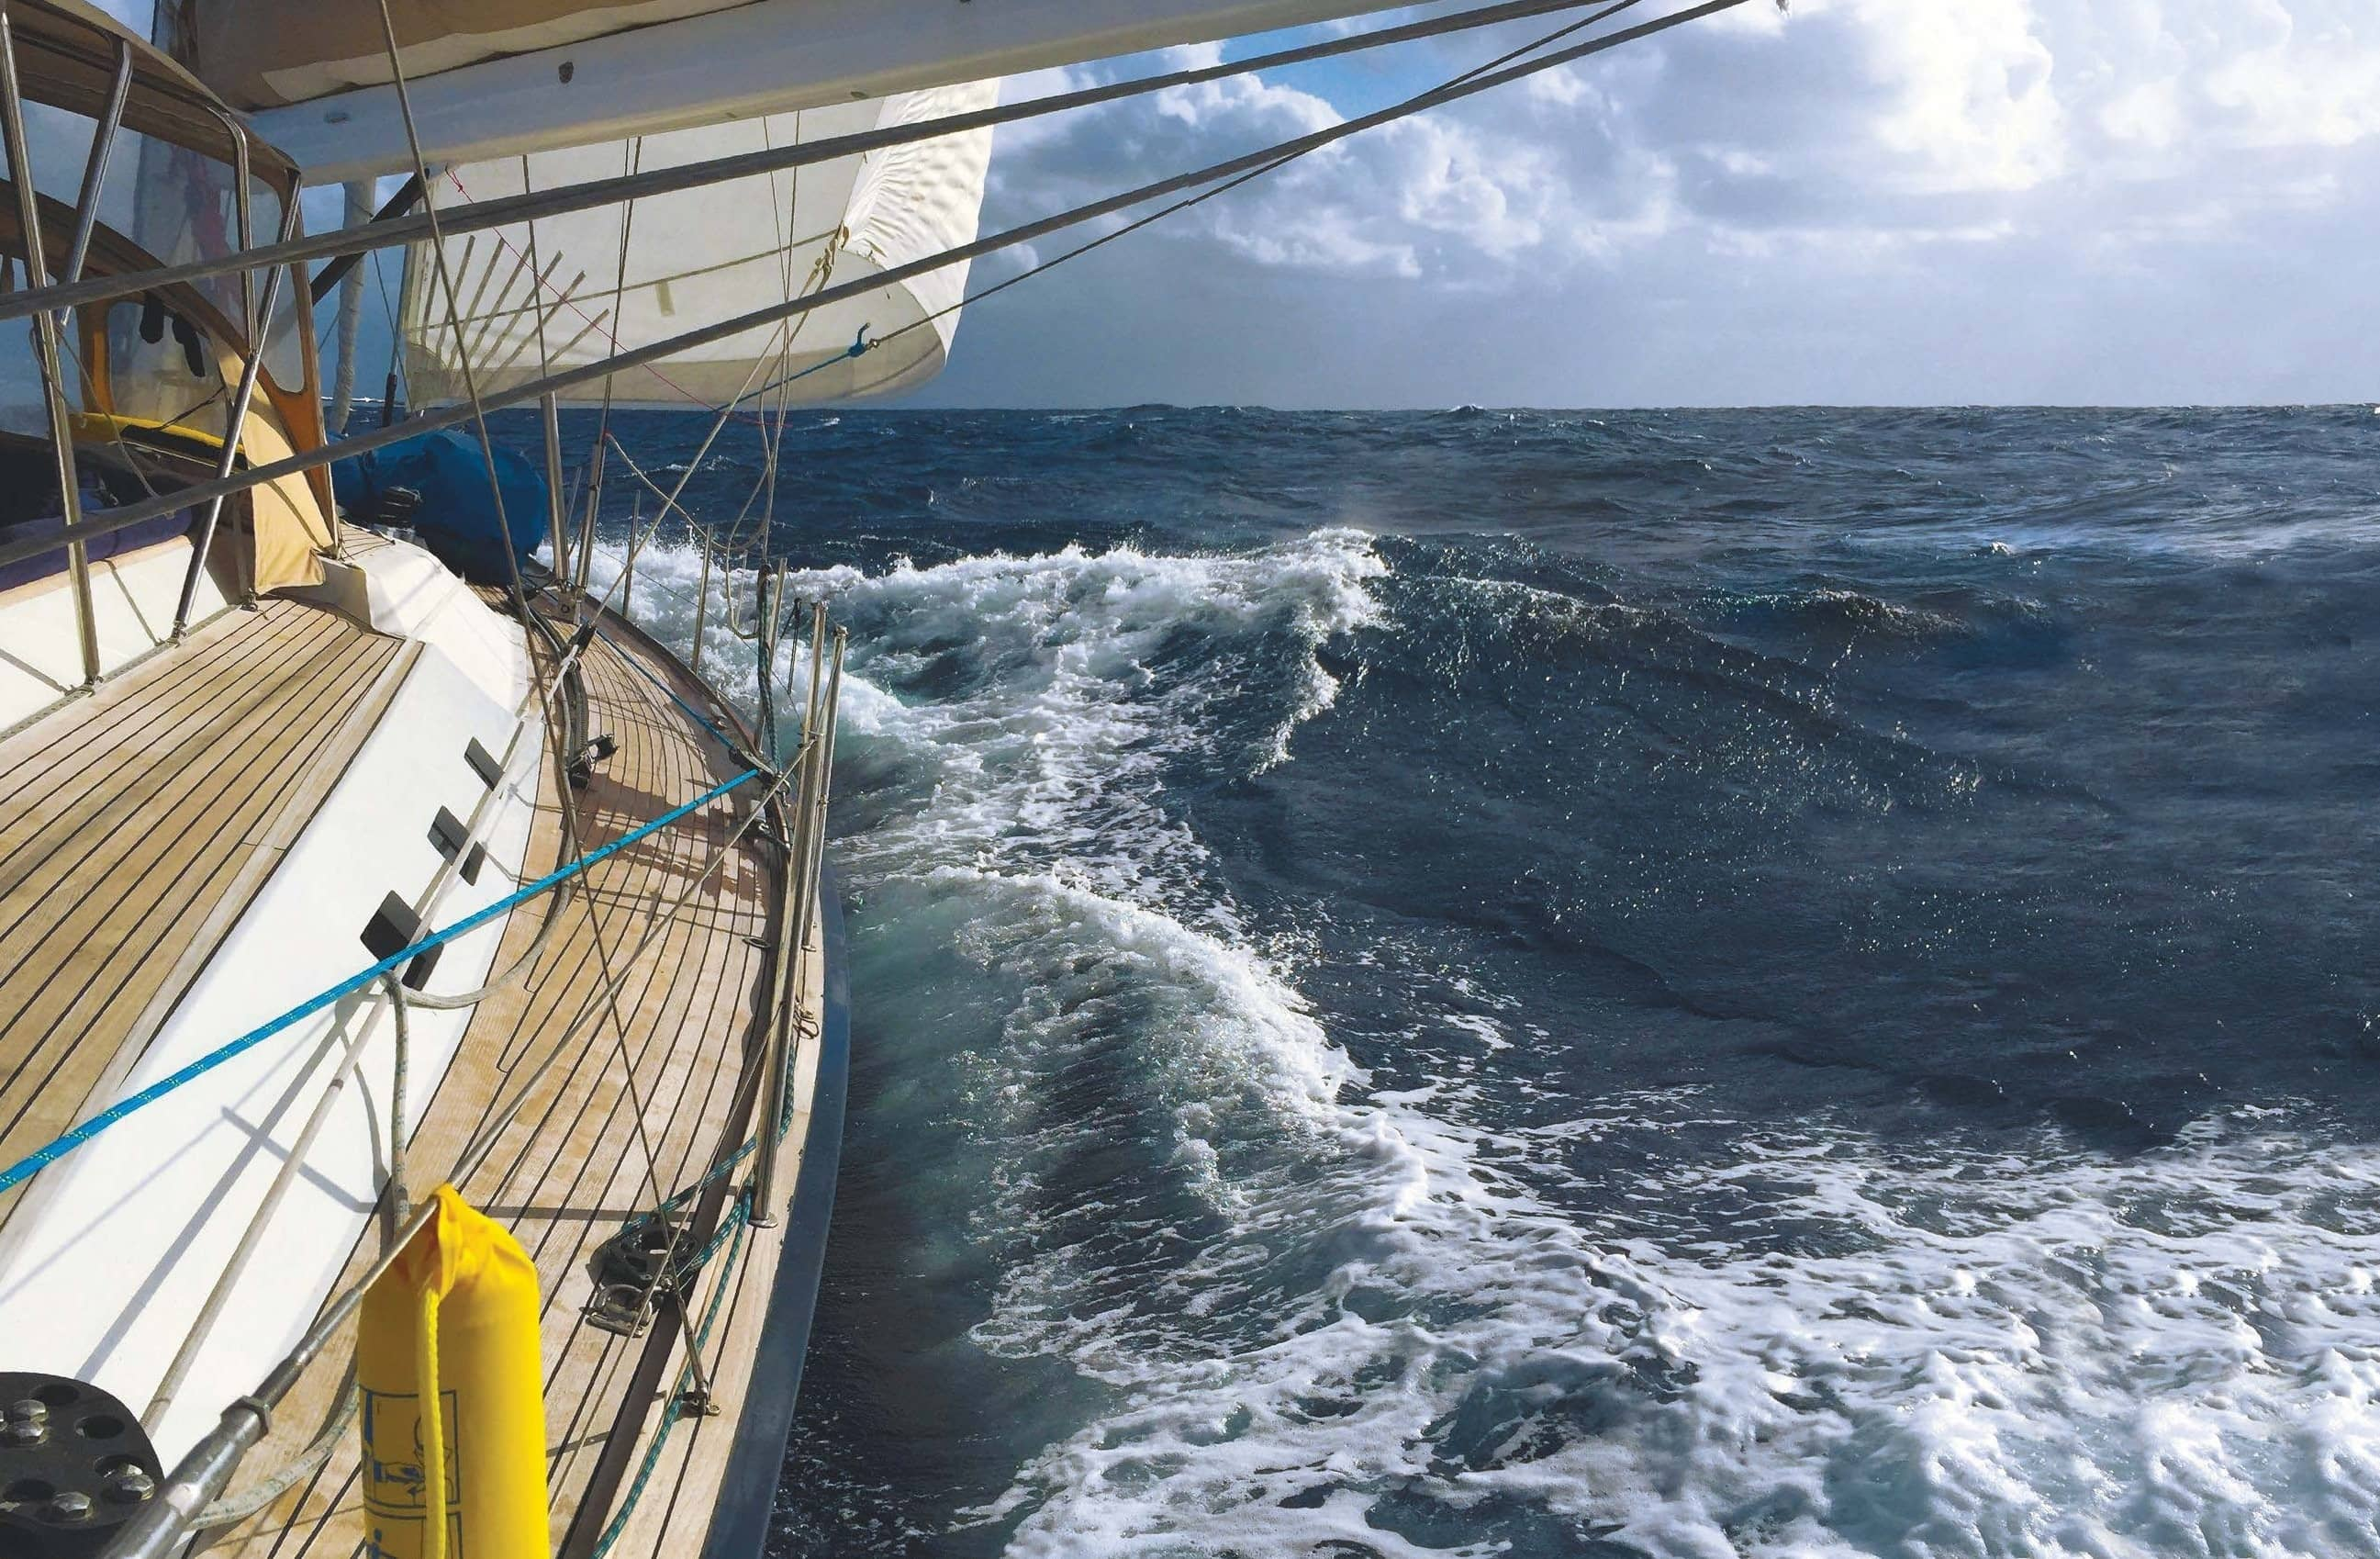 Ocean Proof - How To Prepare For (Nearly) Anything